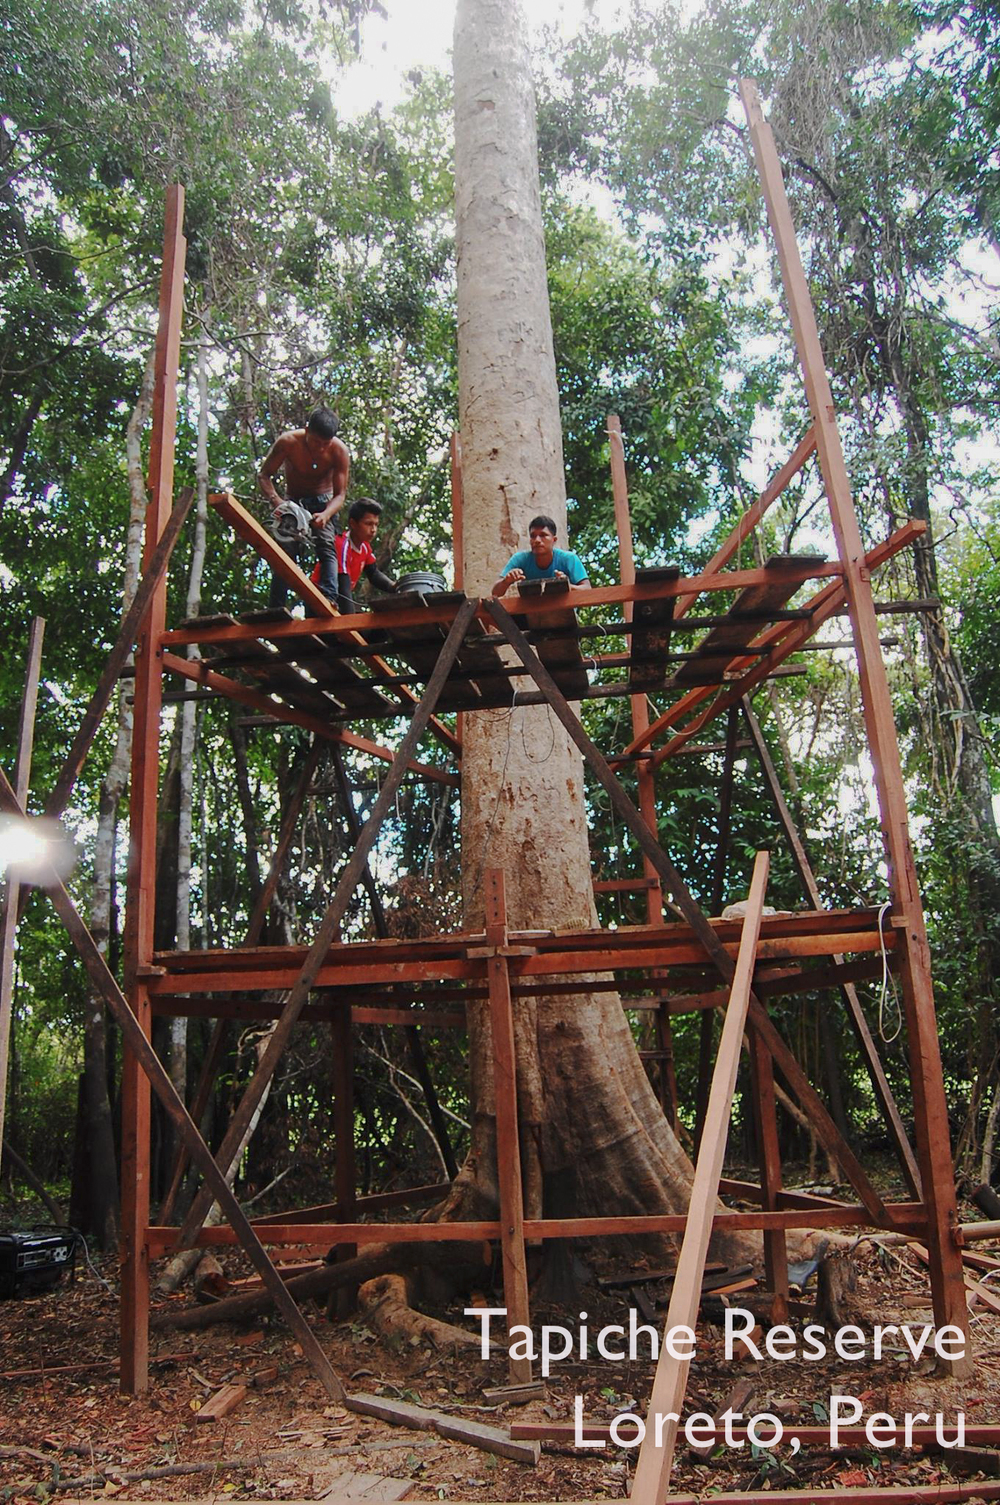 After 8 working days, the tower is almost halfway to its final height of 30-ish meters! Tapiche Reserve Jungle, Peru